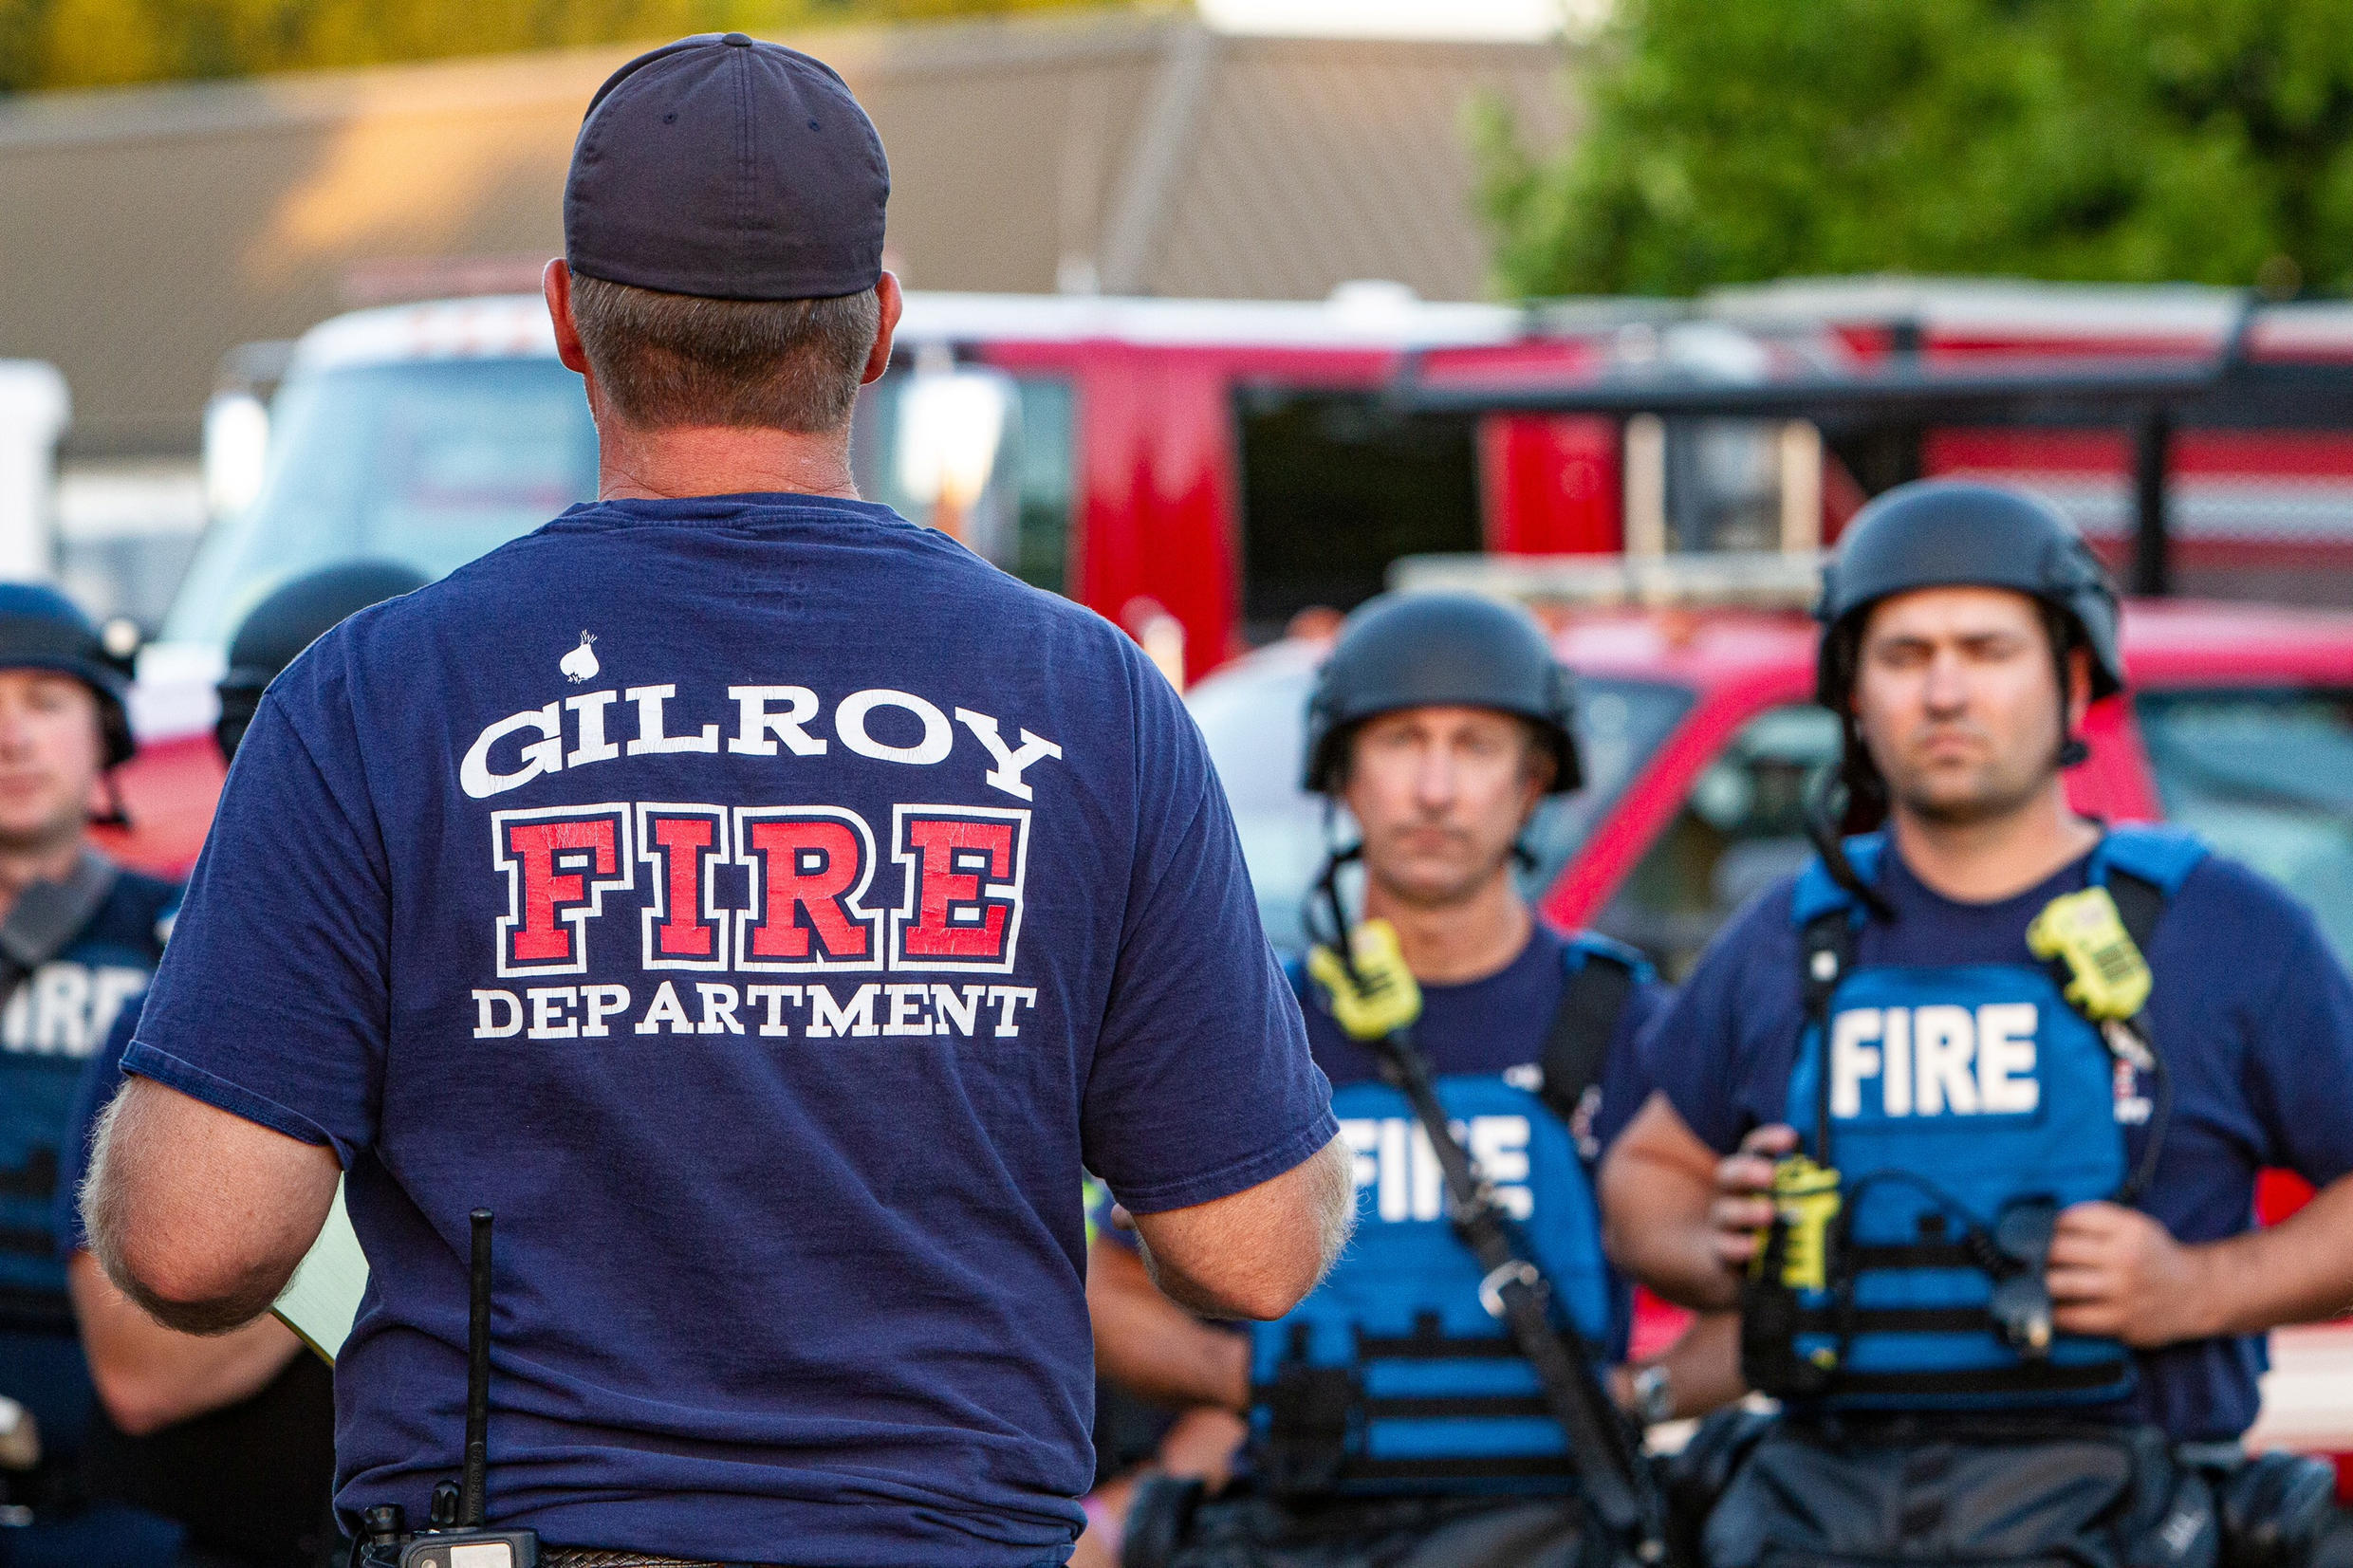 Emergency teams on the spot after the shooting at the Gilroy Garlic Festival, 28 July 2019.